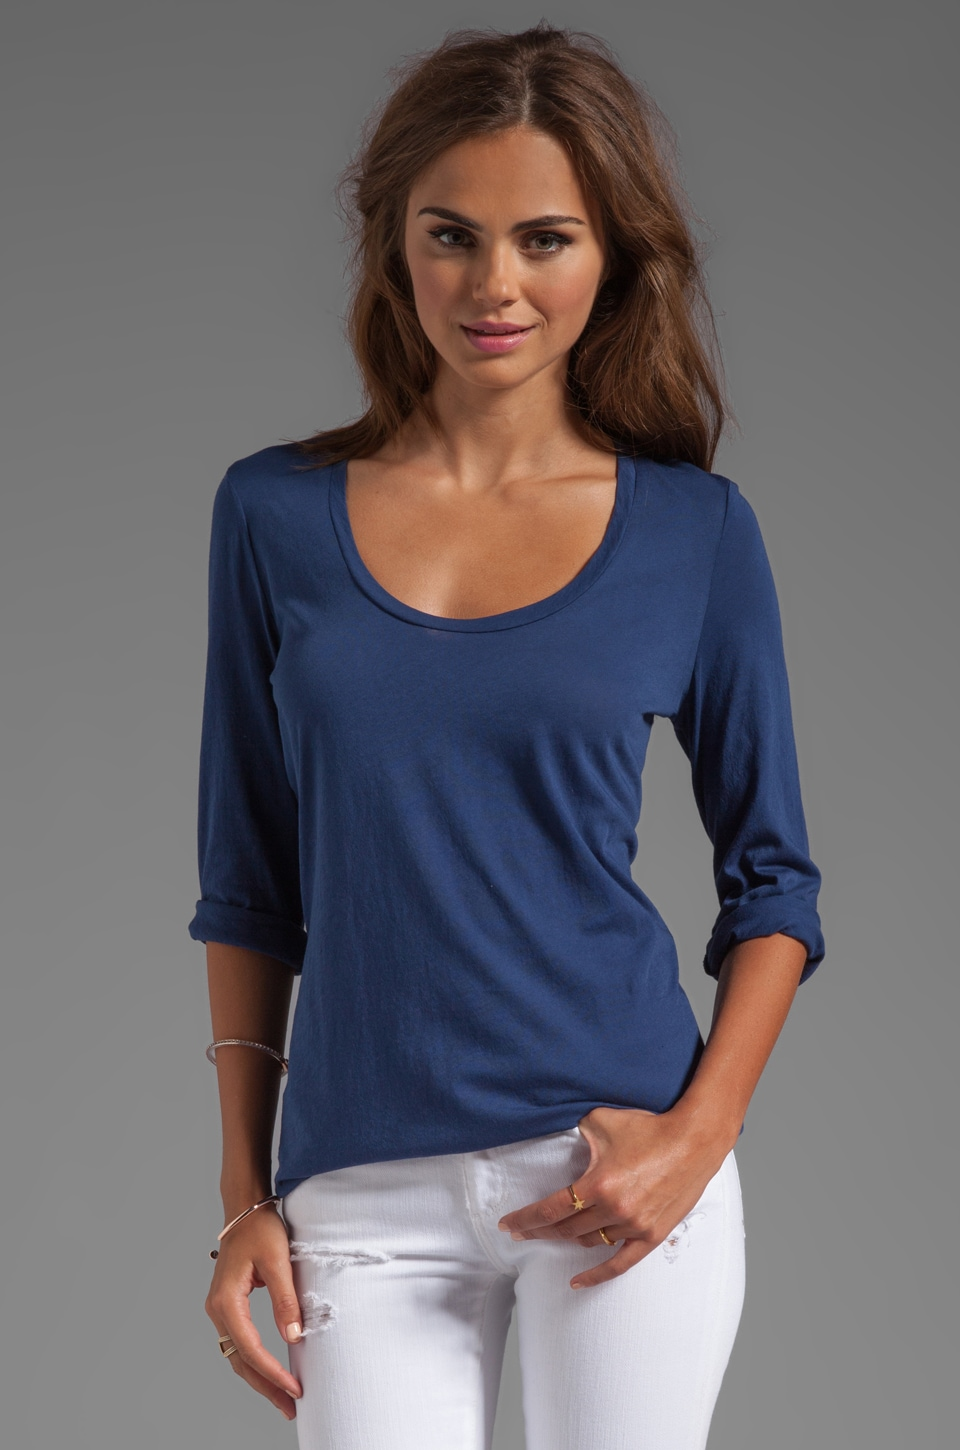 Lanston Scoop 3/4 Sleeve Tee in Night